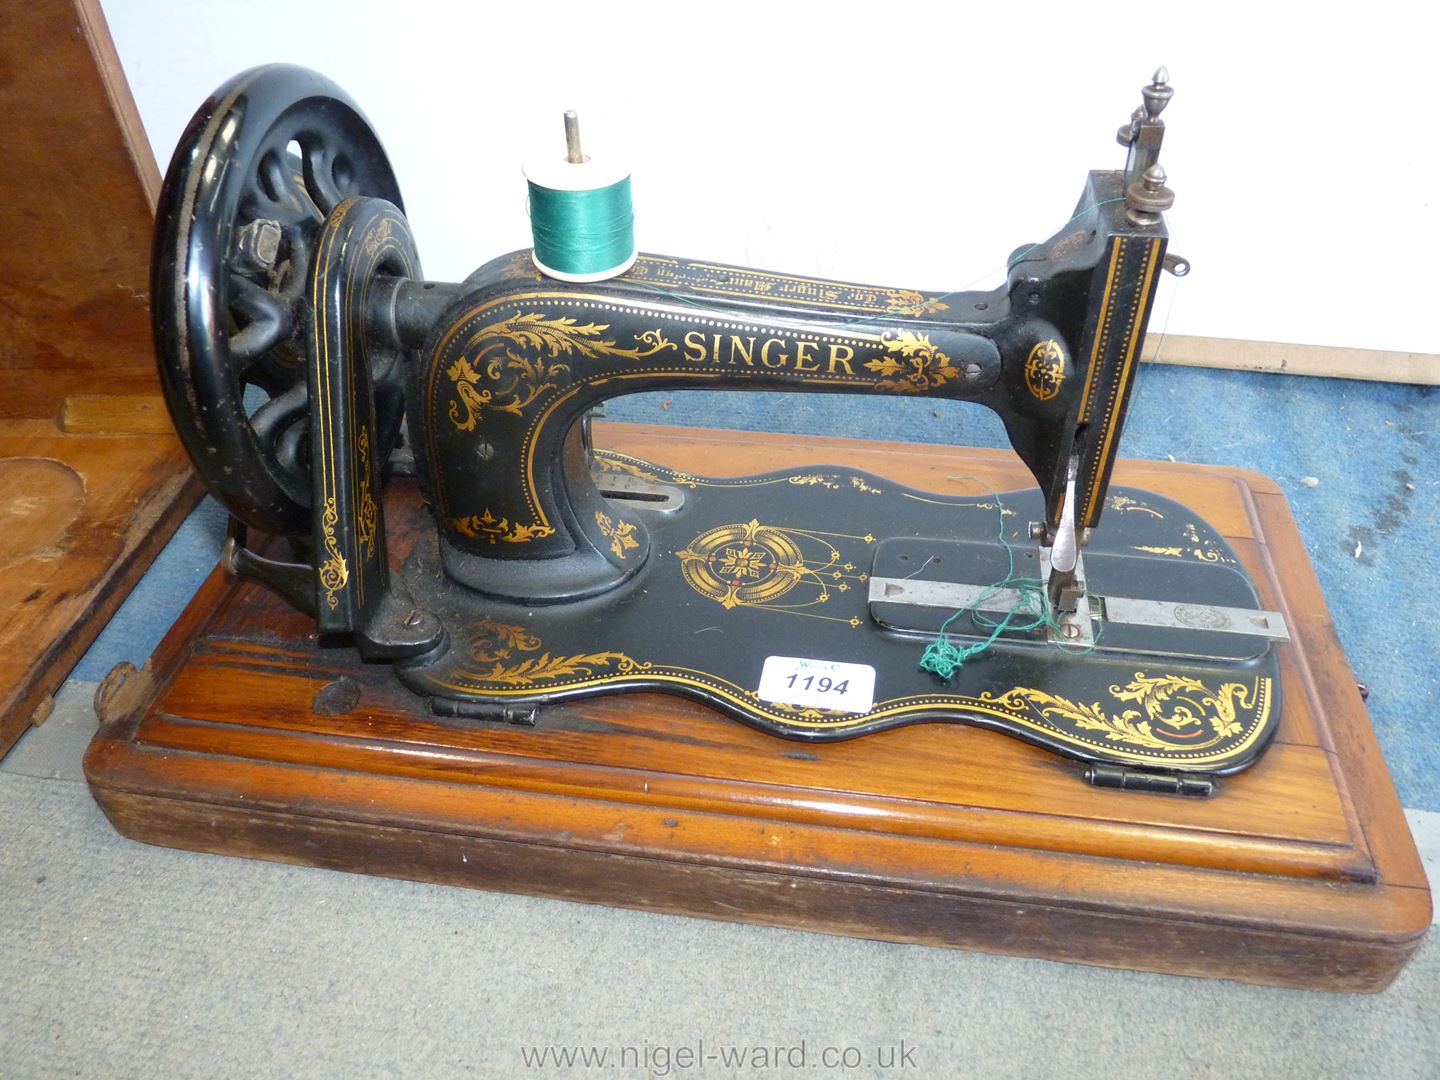 A Singer Hand Sewing Machine in wooden case.